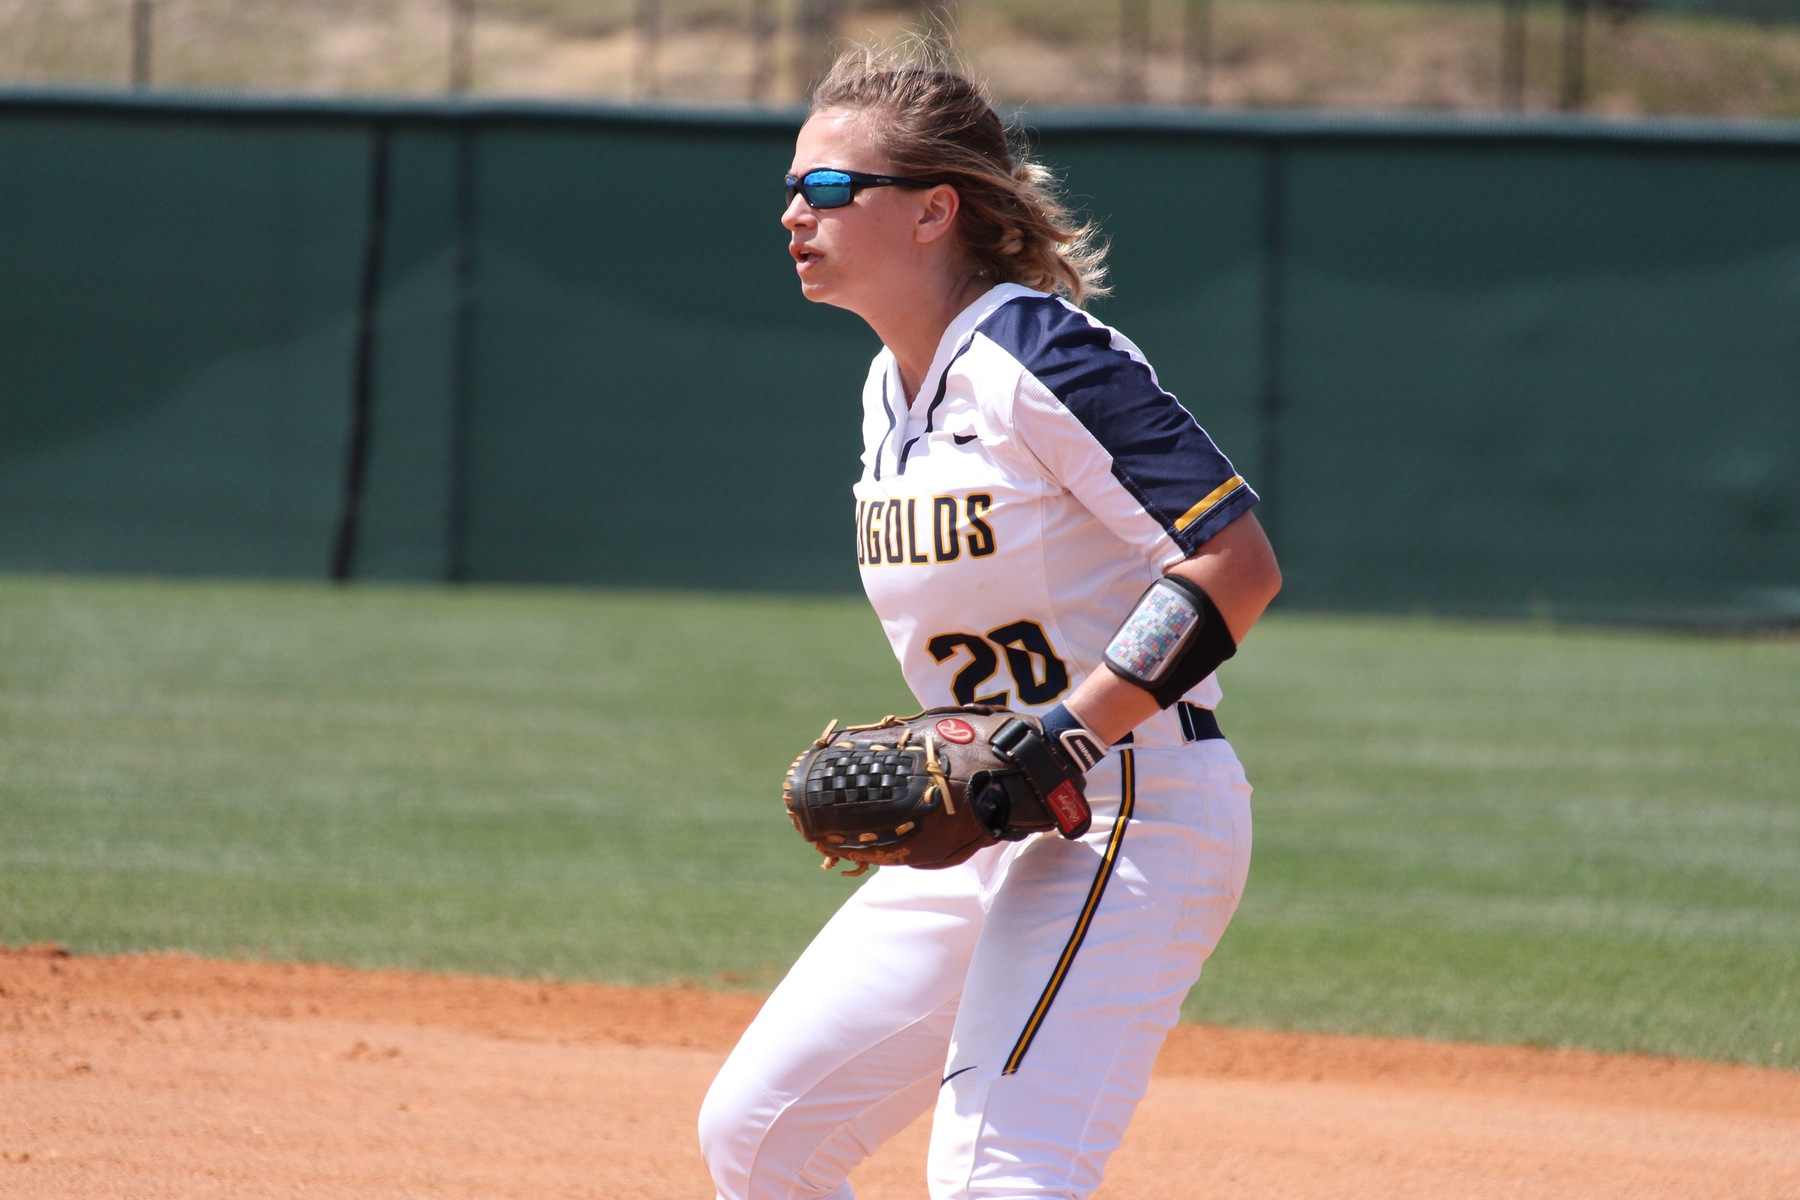 No. 21 Blugolds record another WIAC split